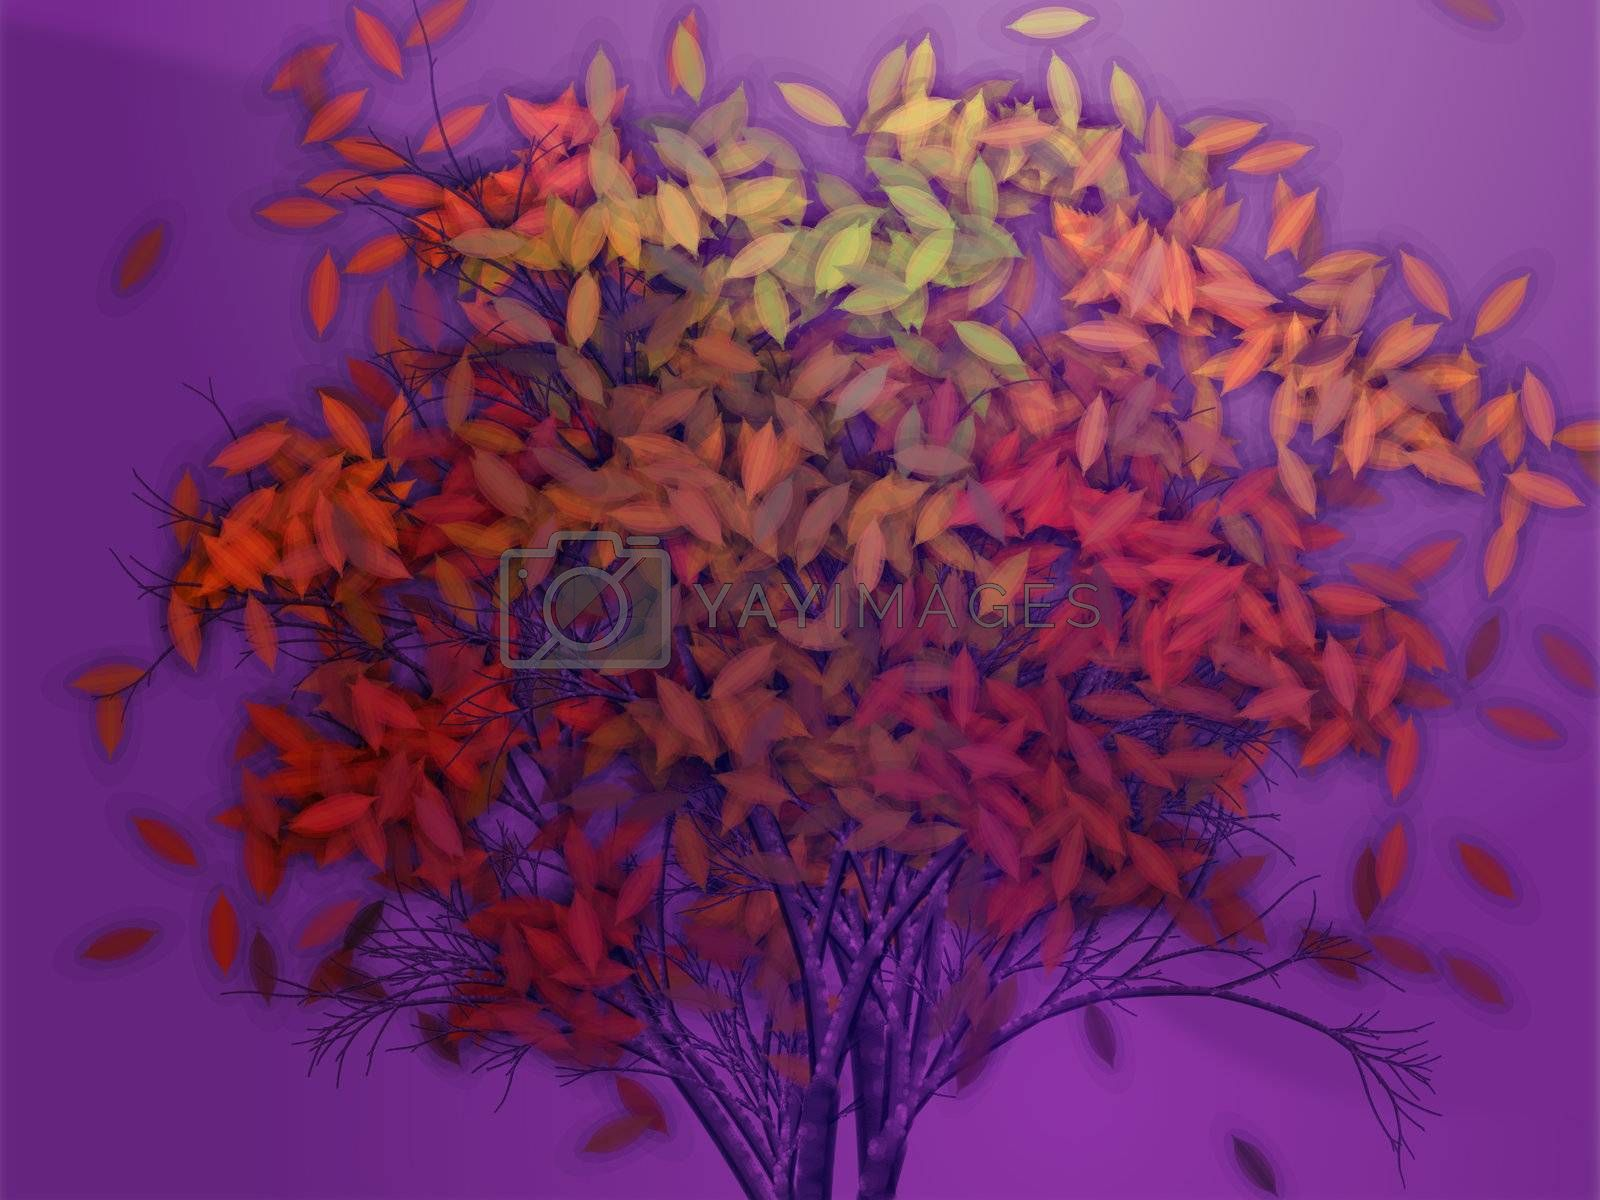 Autumn tree with falling leaves, abstract rendered illustration